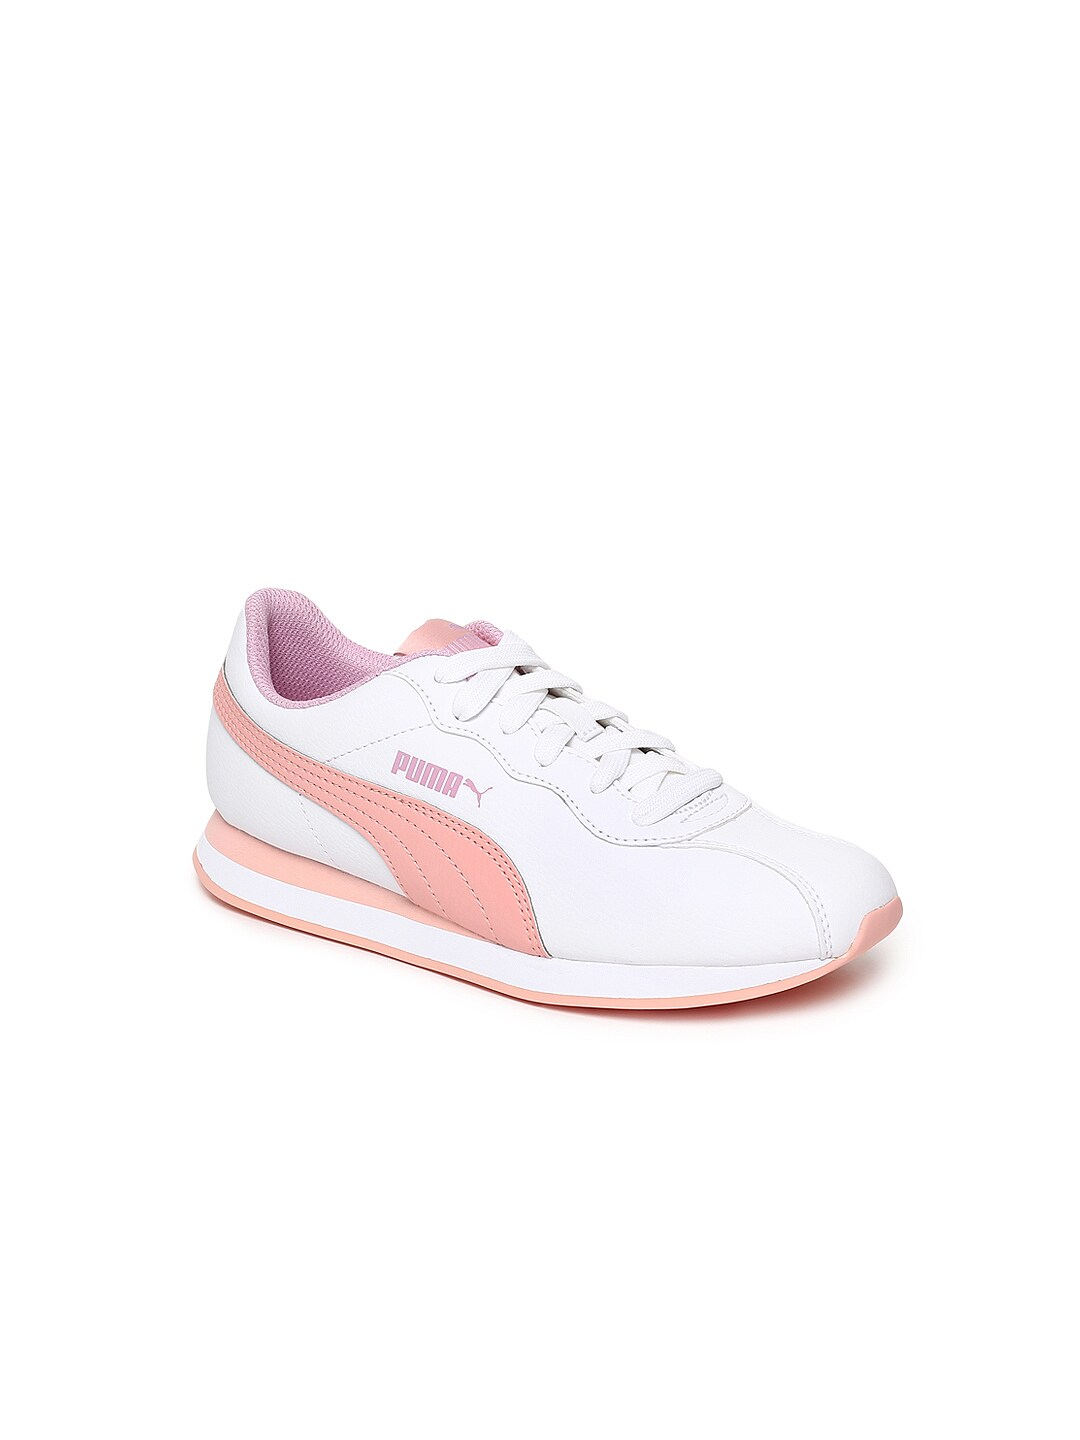 87e154e21c1e Puma Whitley Jr White Sneakers for girls in India - Buy at Lowest ...